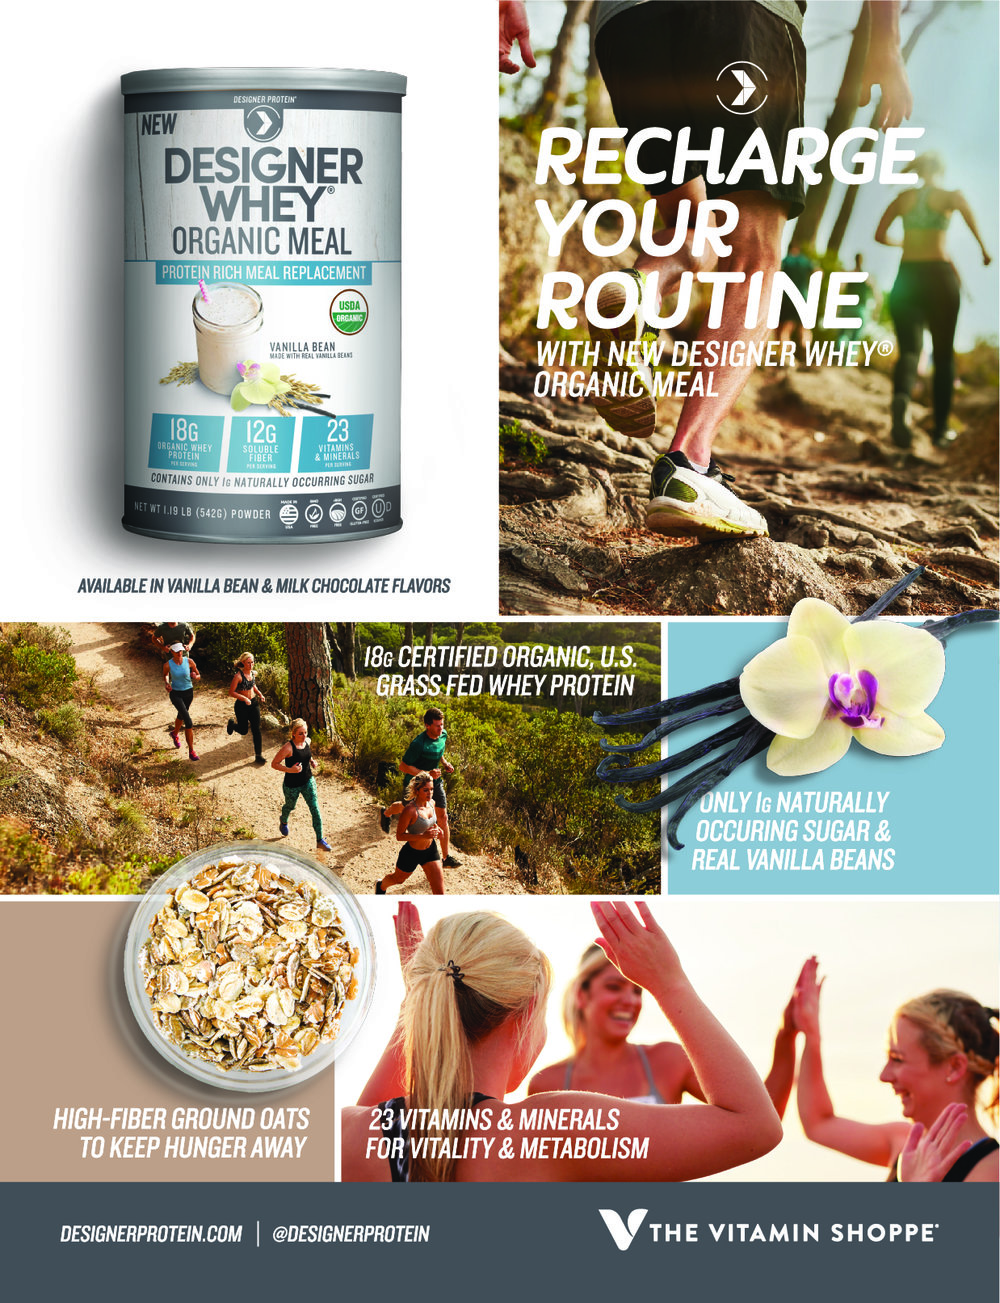 Ad designed for The Vitamin Shoppe's in-house magazine, Amazing Wellness - designed from concept to completion